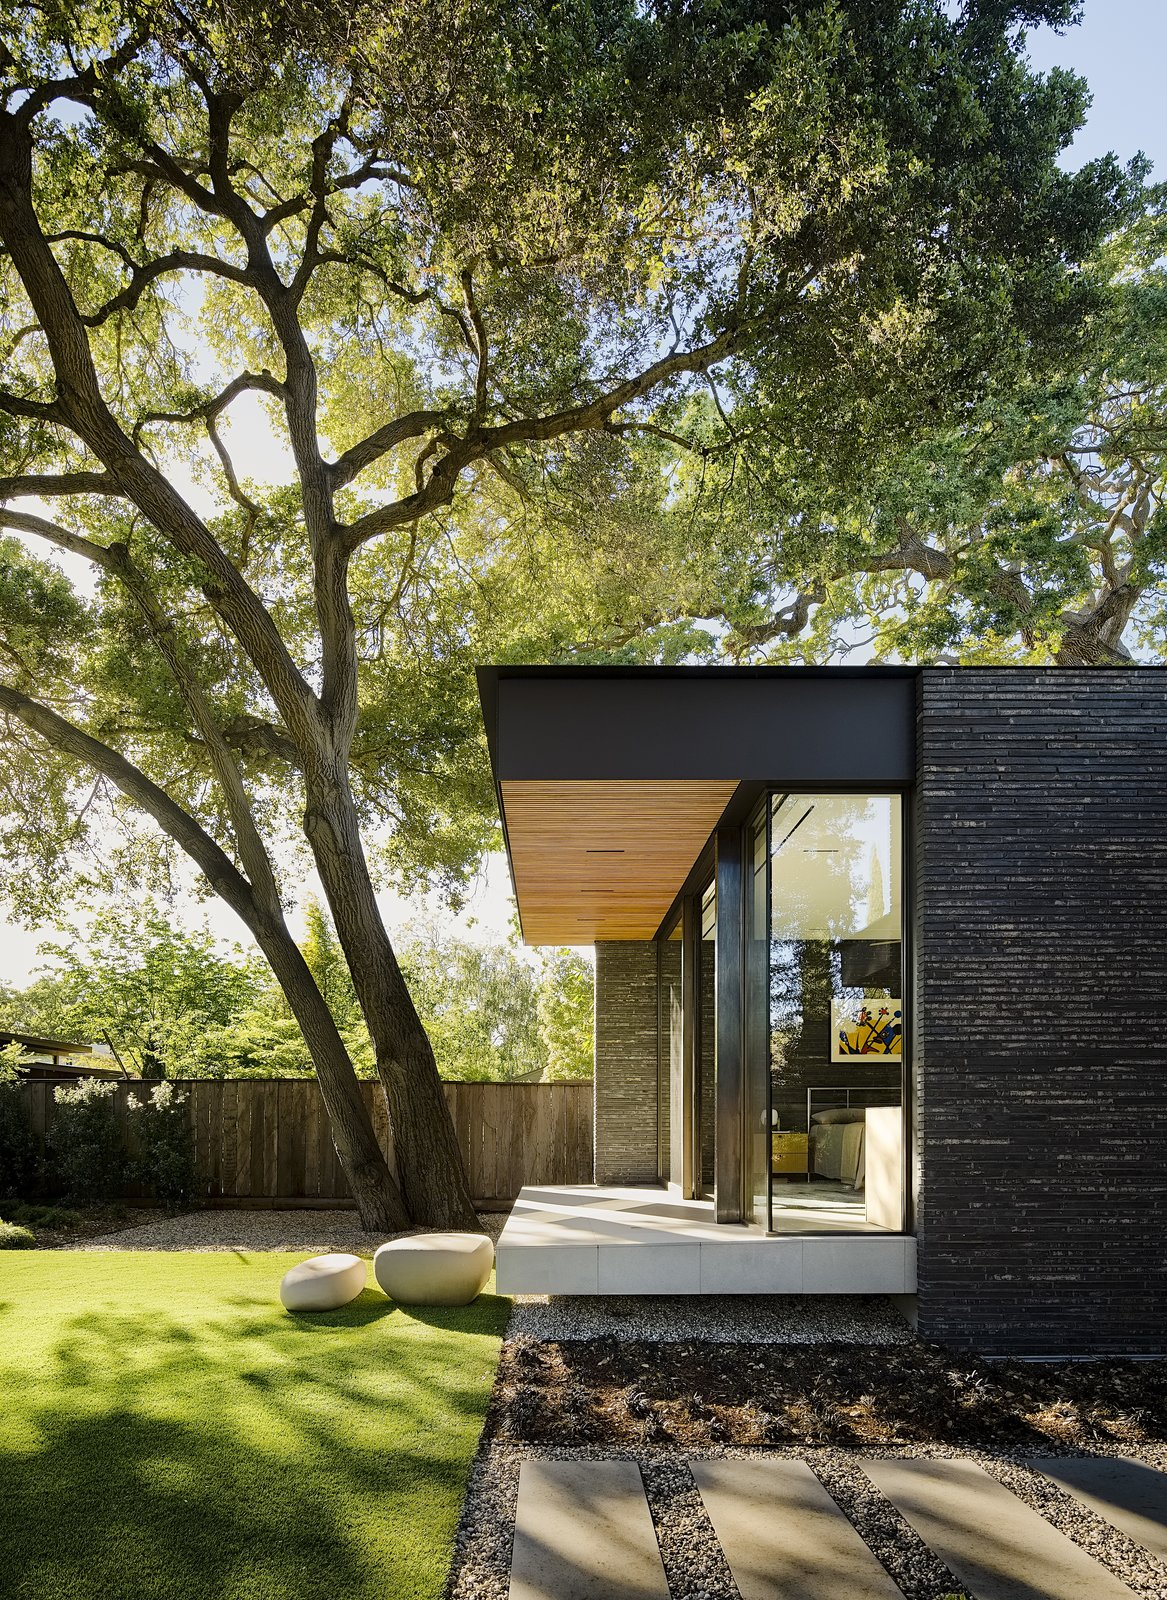 Outdoor, Trees, Side Yard, Back Yard, Boulders, Grass, Walkways, and Wood The master bedroom was raised and cantilevered so as not to disturb the mature oak tree roots. Boulders are used as steps to the lawn.  Outdoor Boulders Trees Photos from A Modernist Dream Home Makes the Most of a Rare Double Lot in Palo Alto